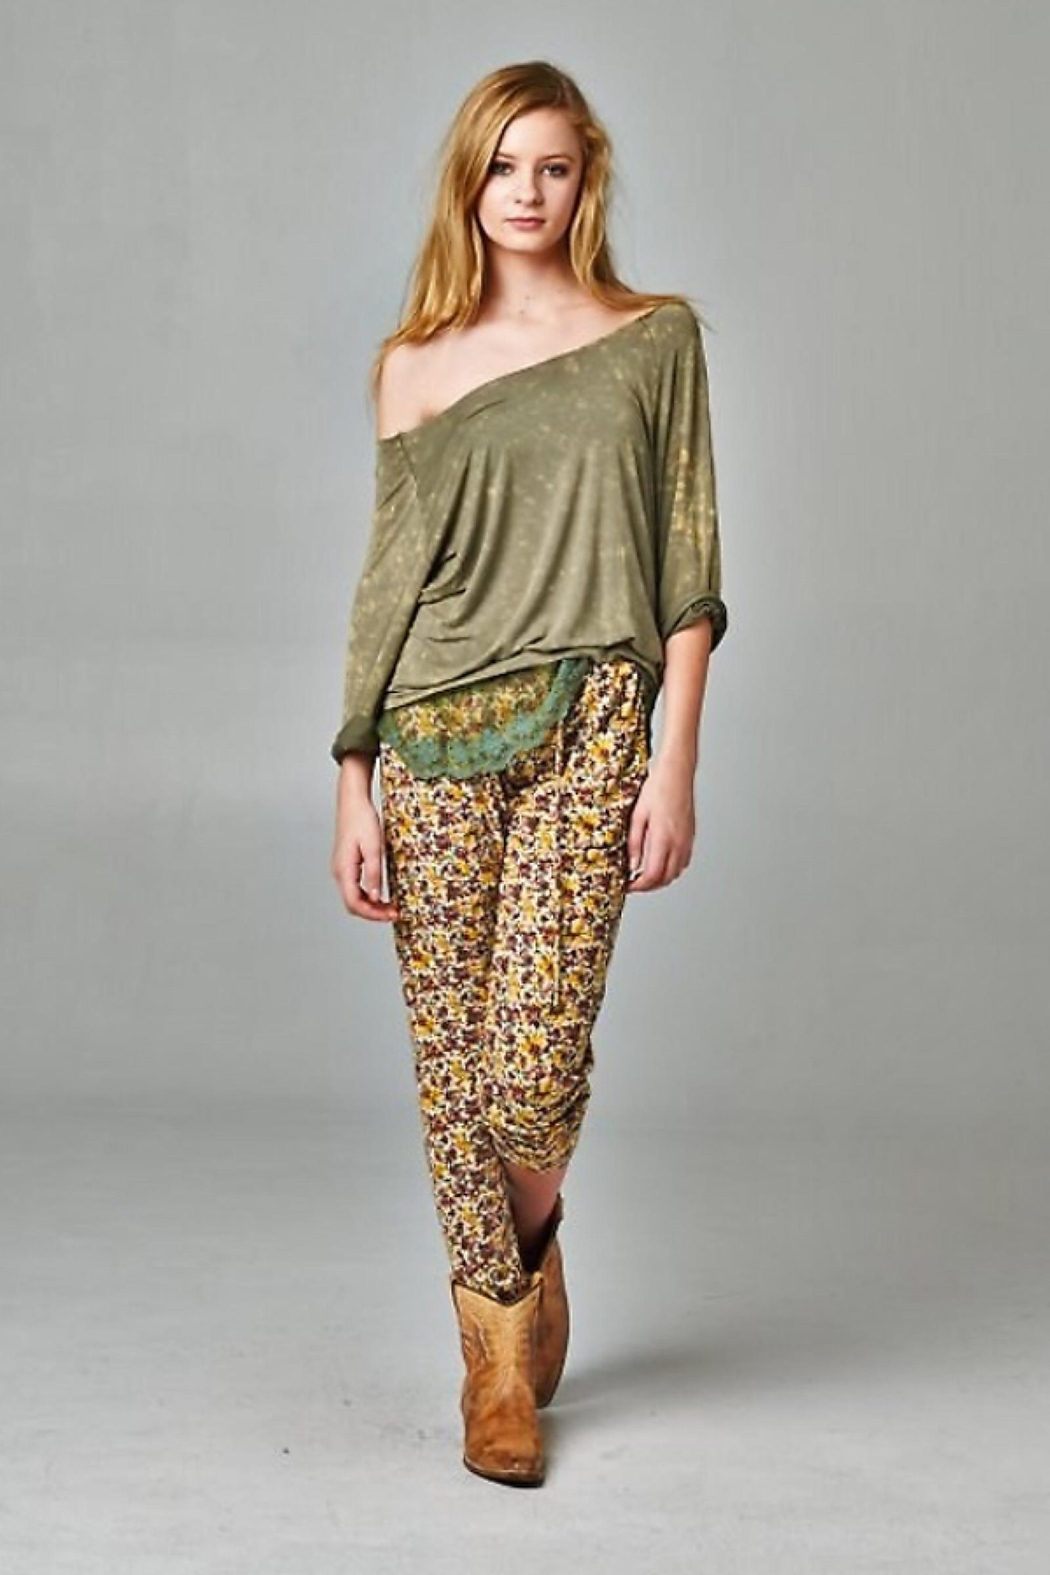 People Outfitter Olive Green Layered Look Top - Main Image